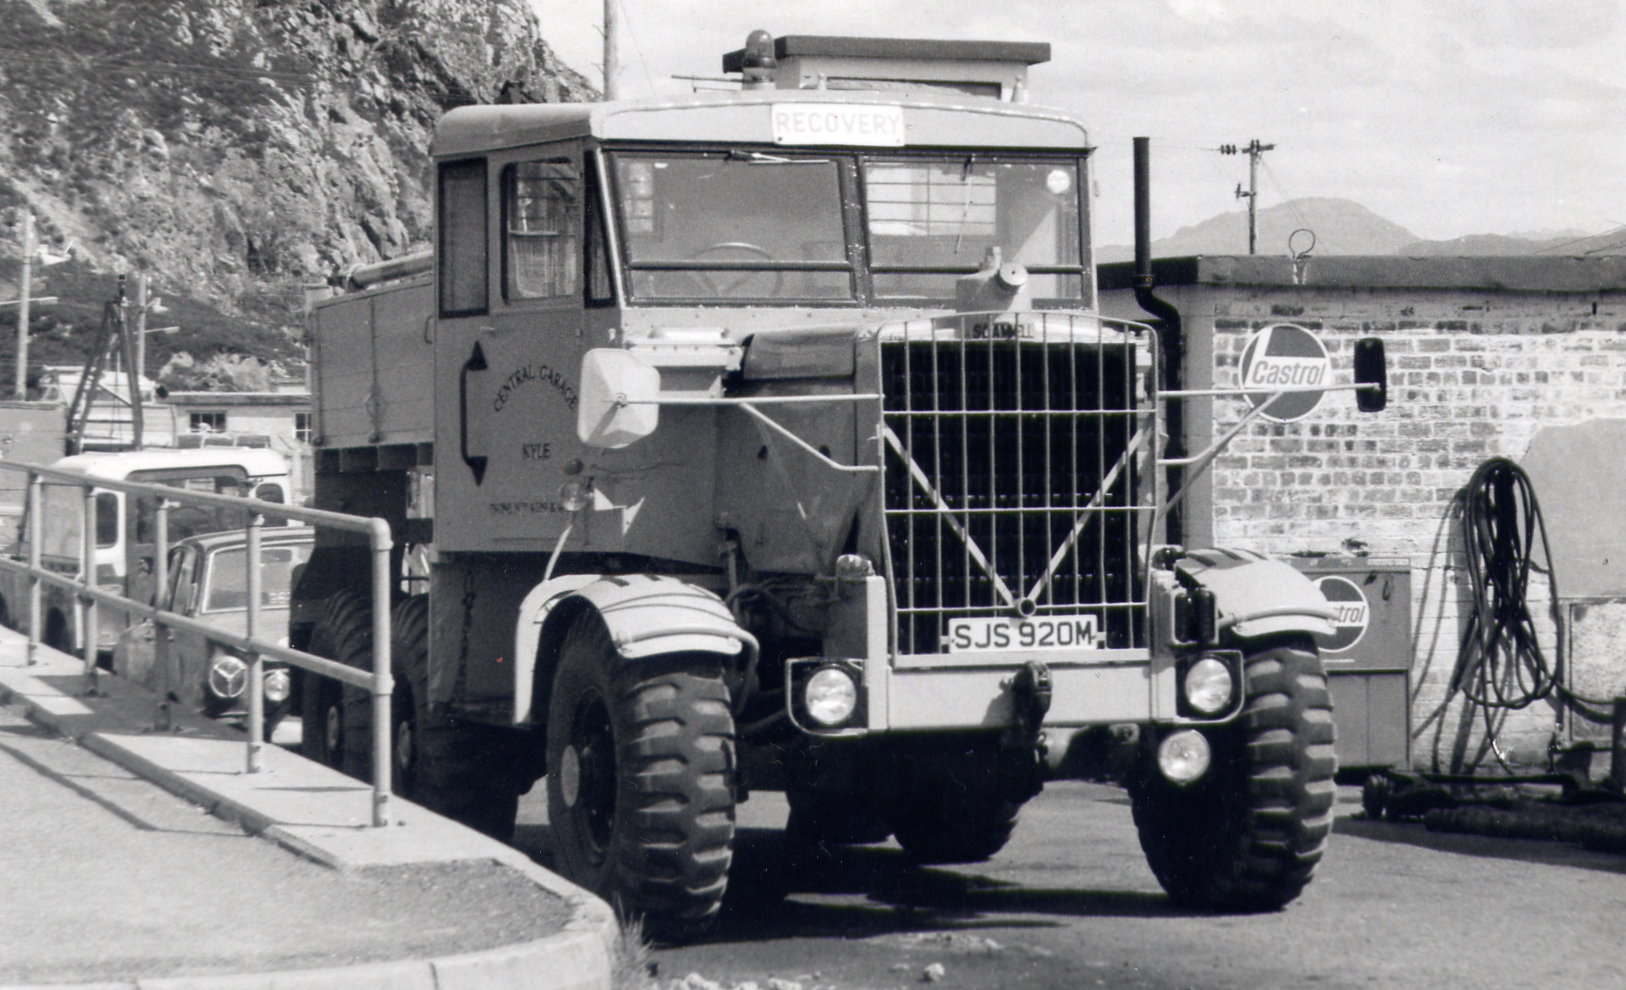 scammell-explorer-10ton-recovery-tractor-sjs-920-m.jpg